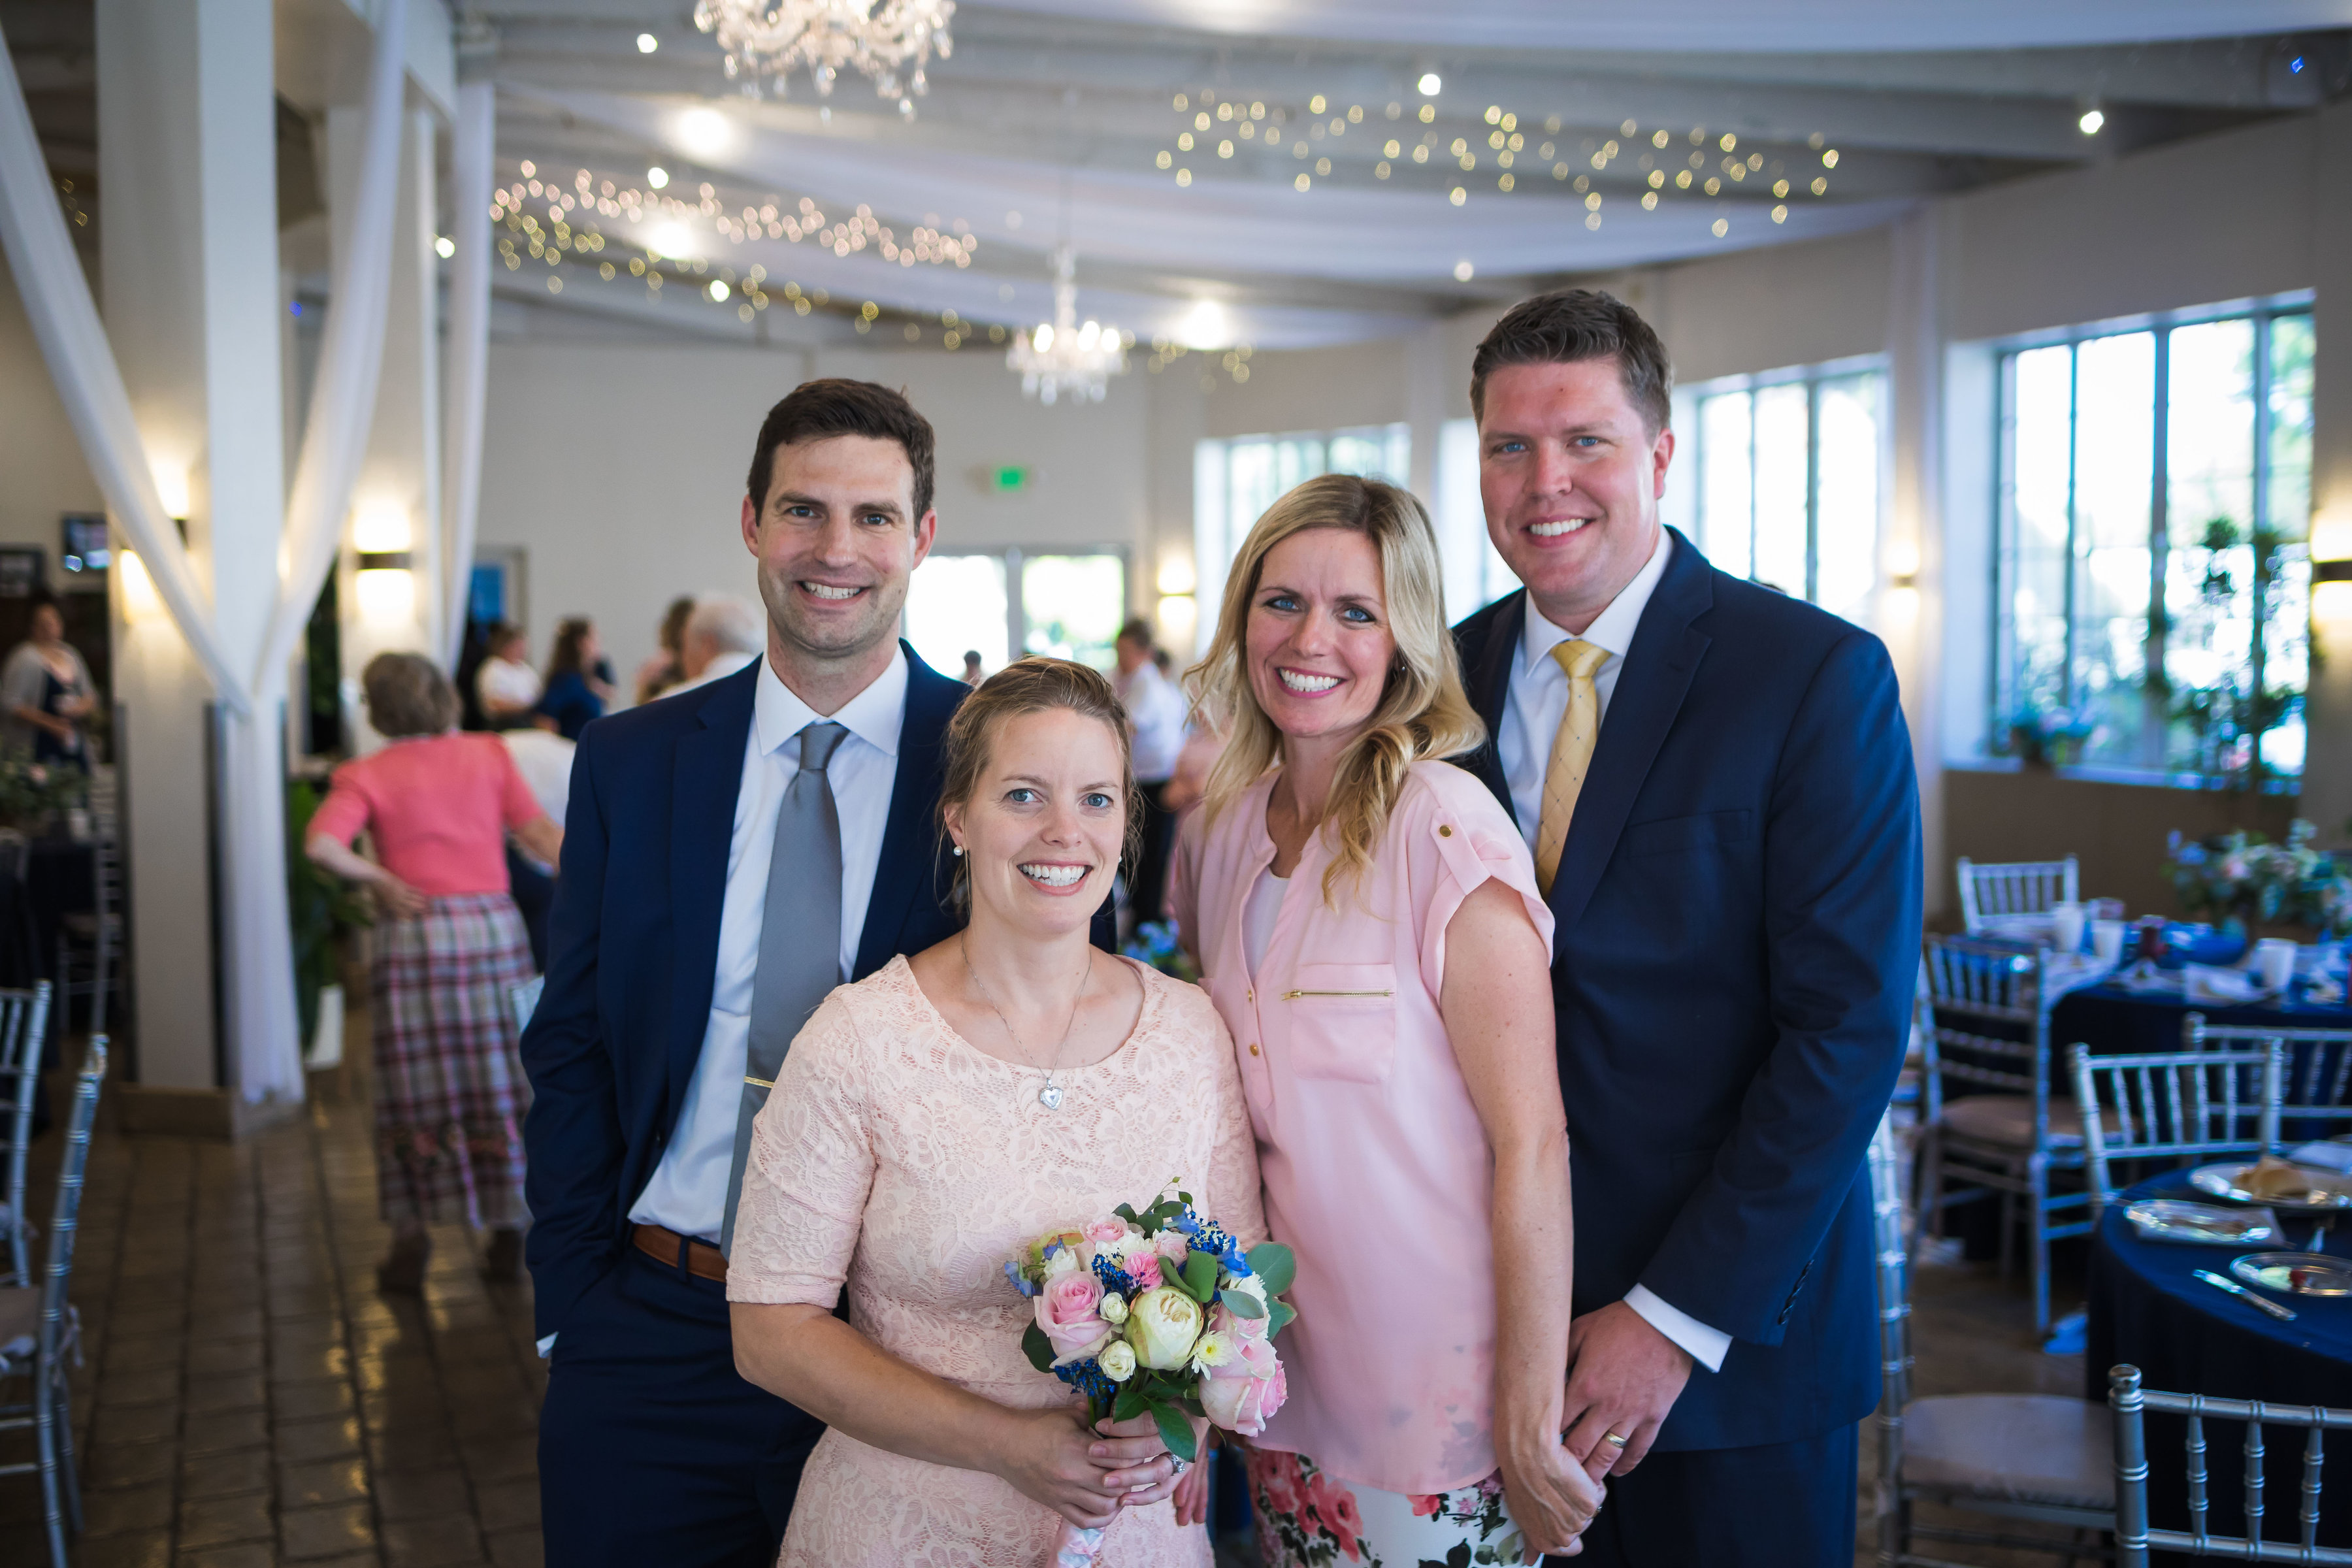 Jacob and Marin Evans, left, with their friends Lisle and MayAnn Updike at their wedding luncheon.